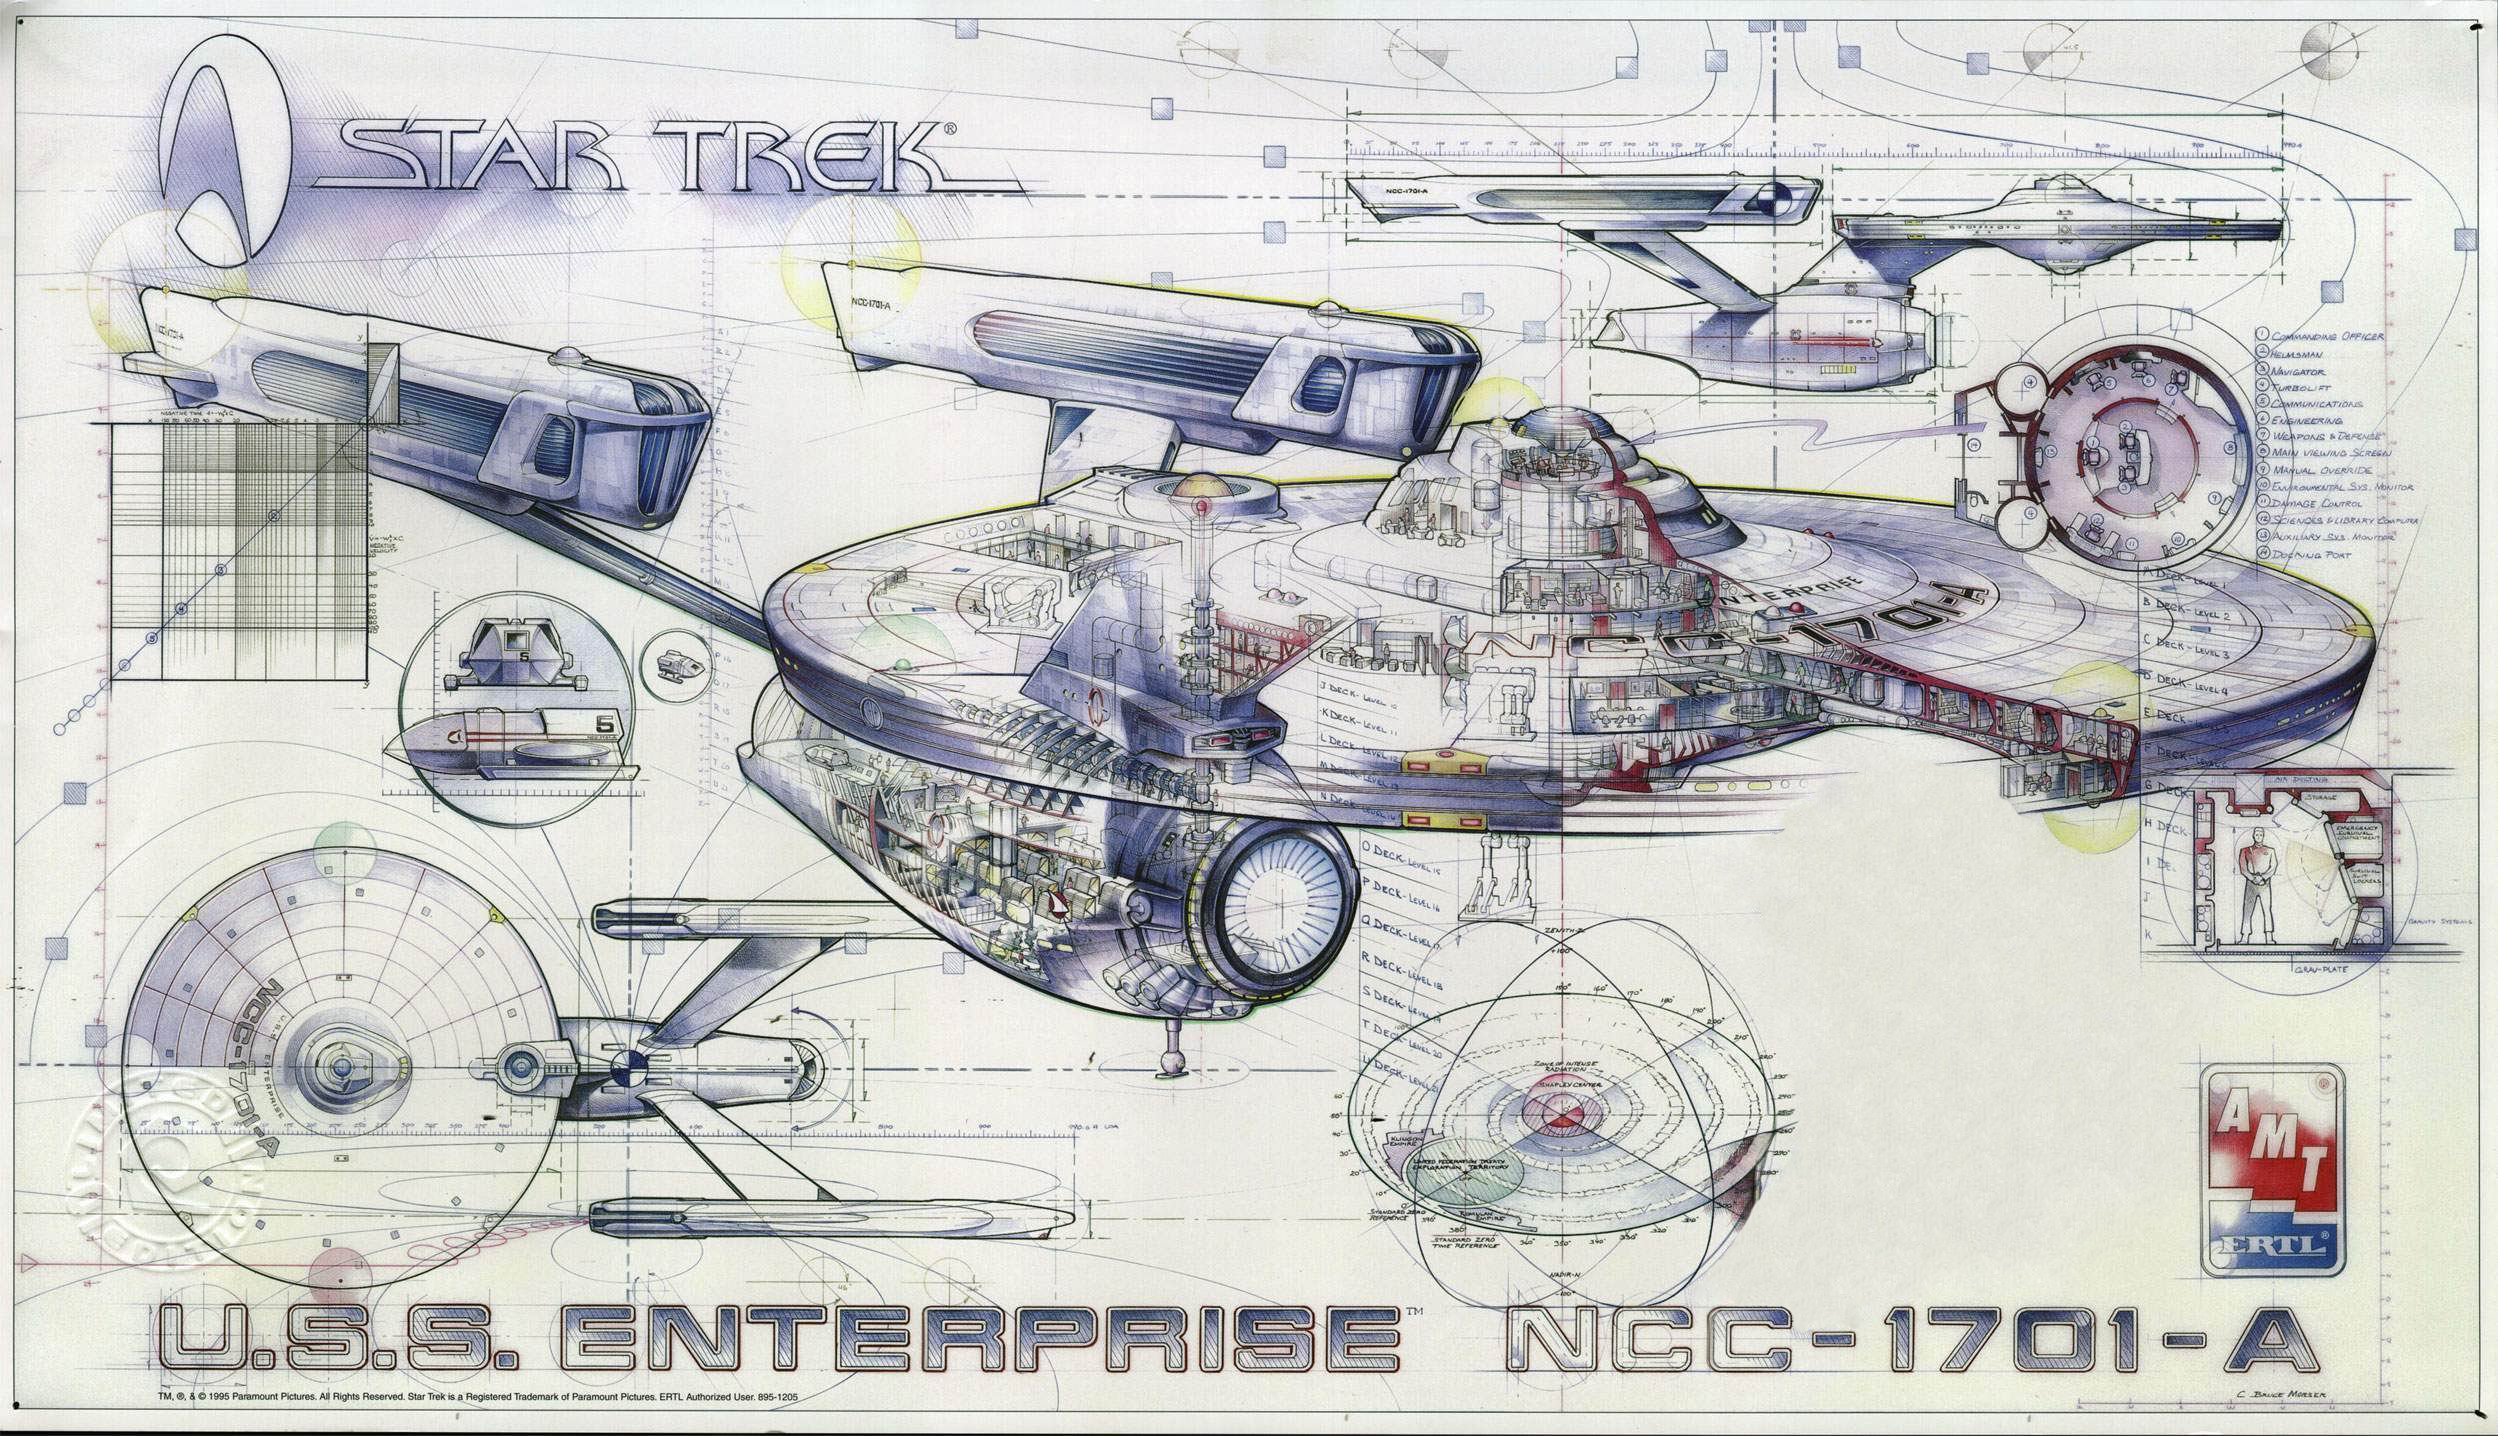 Star Trek, blueprints, USS Enterprise, Star Trek schematics - Free ...